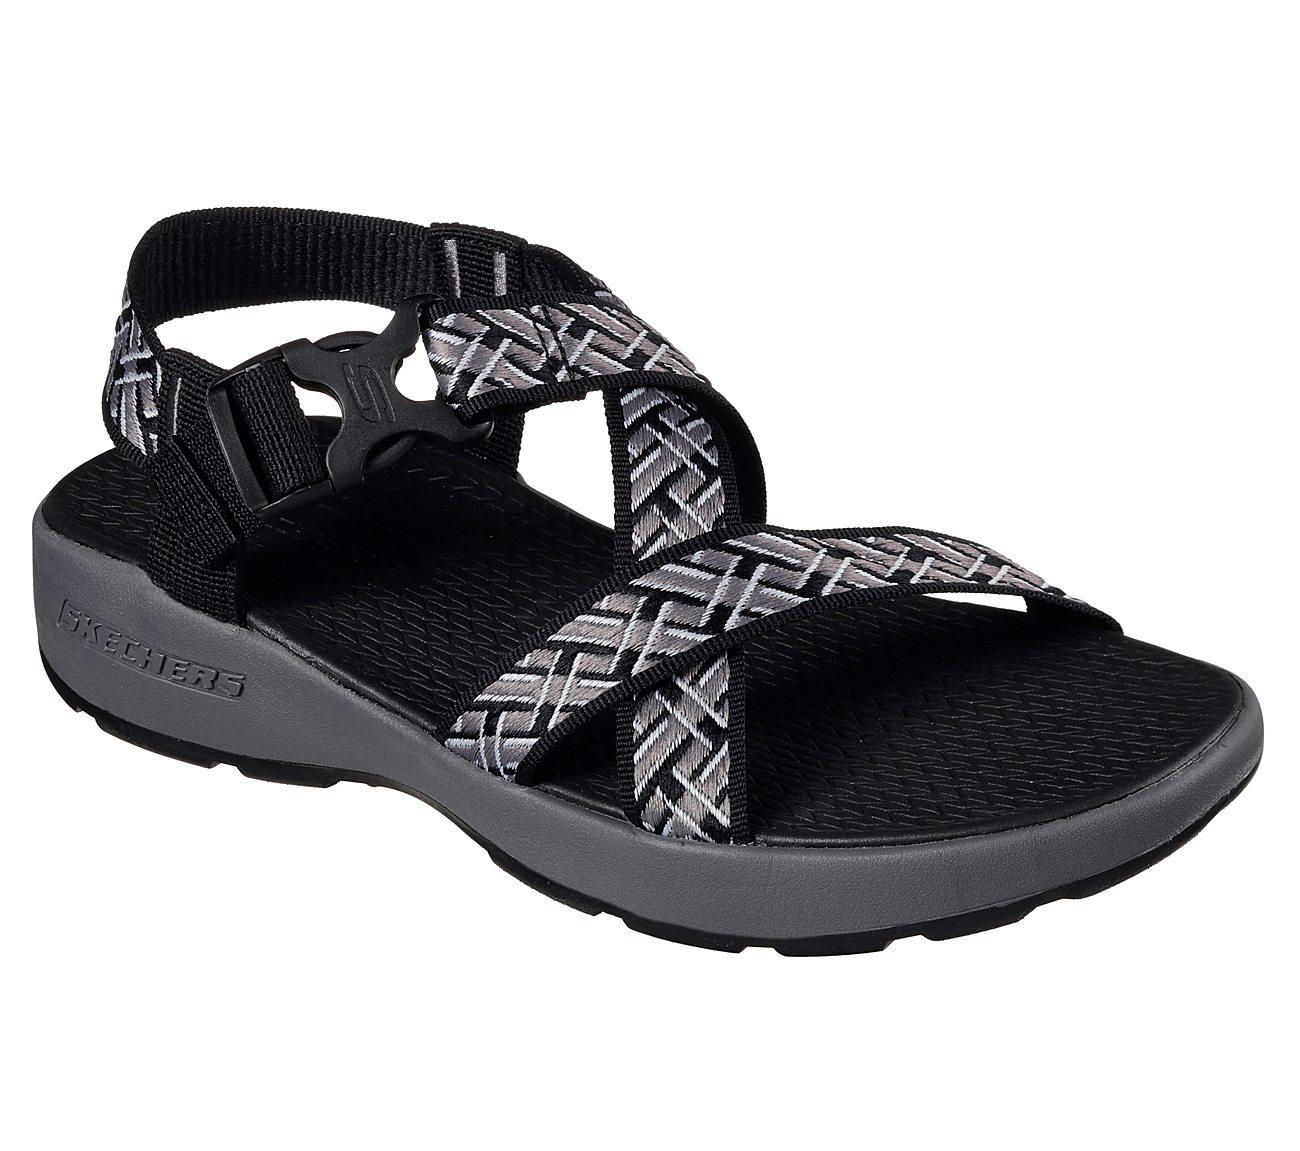 98c20bf4df5f Buy Online Mens Sports Sandals Singapore